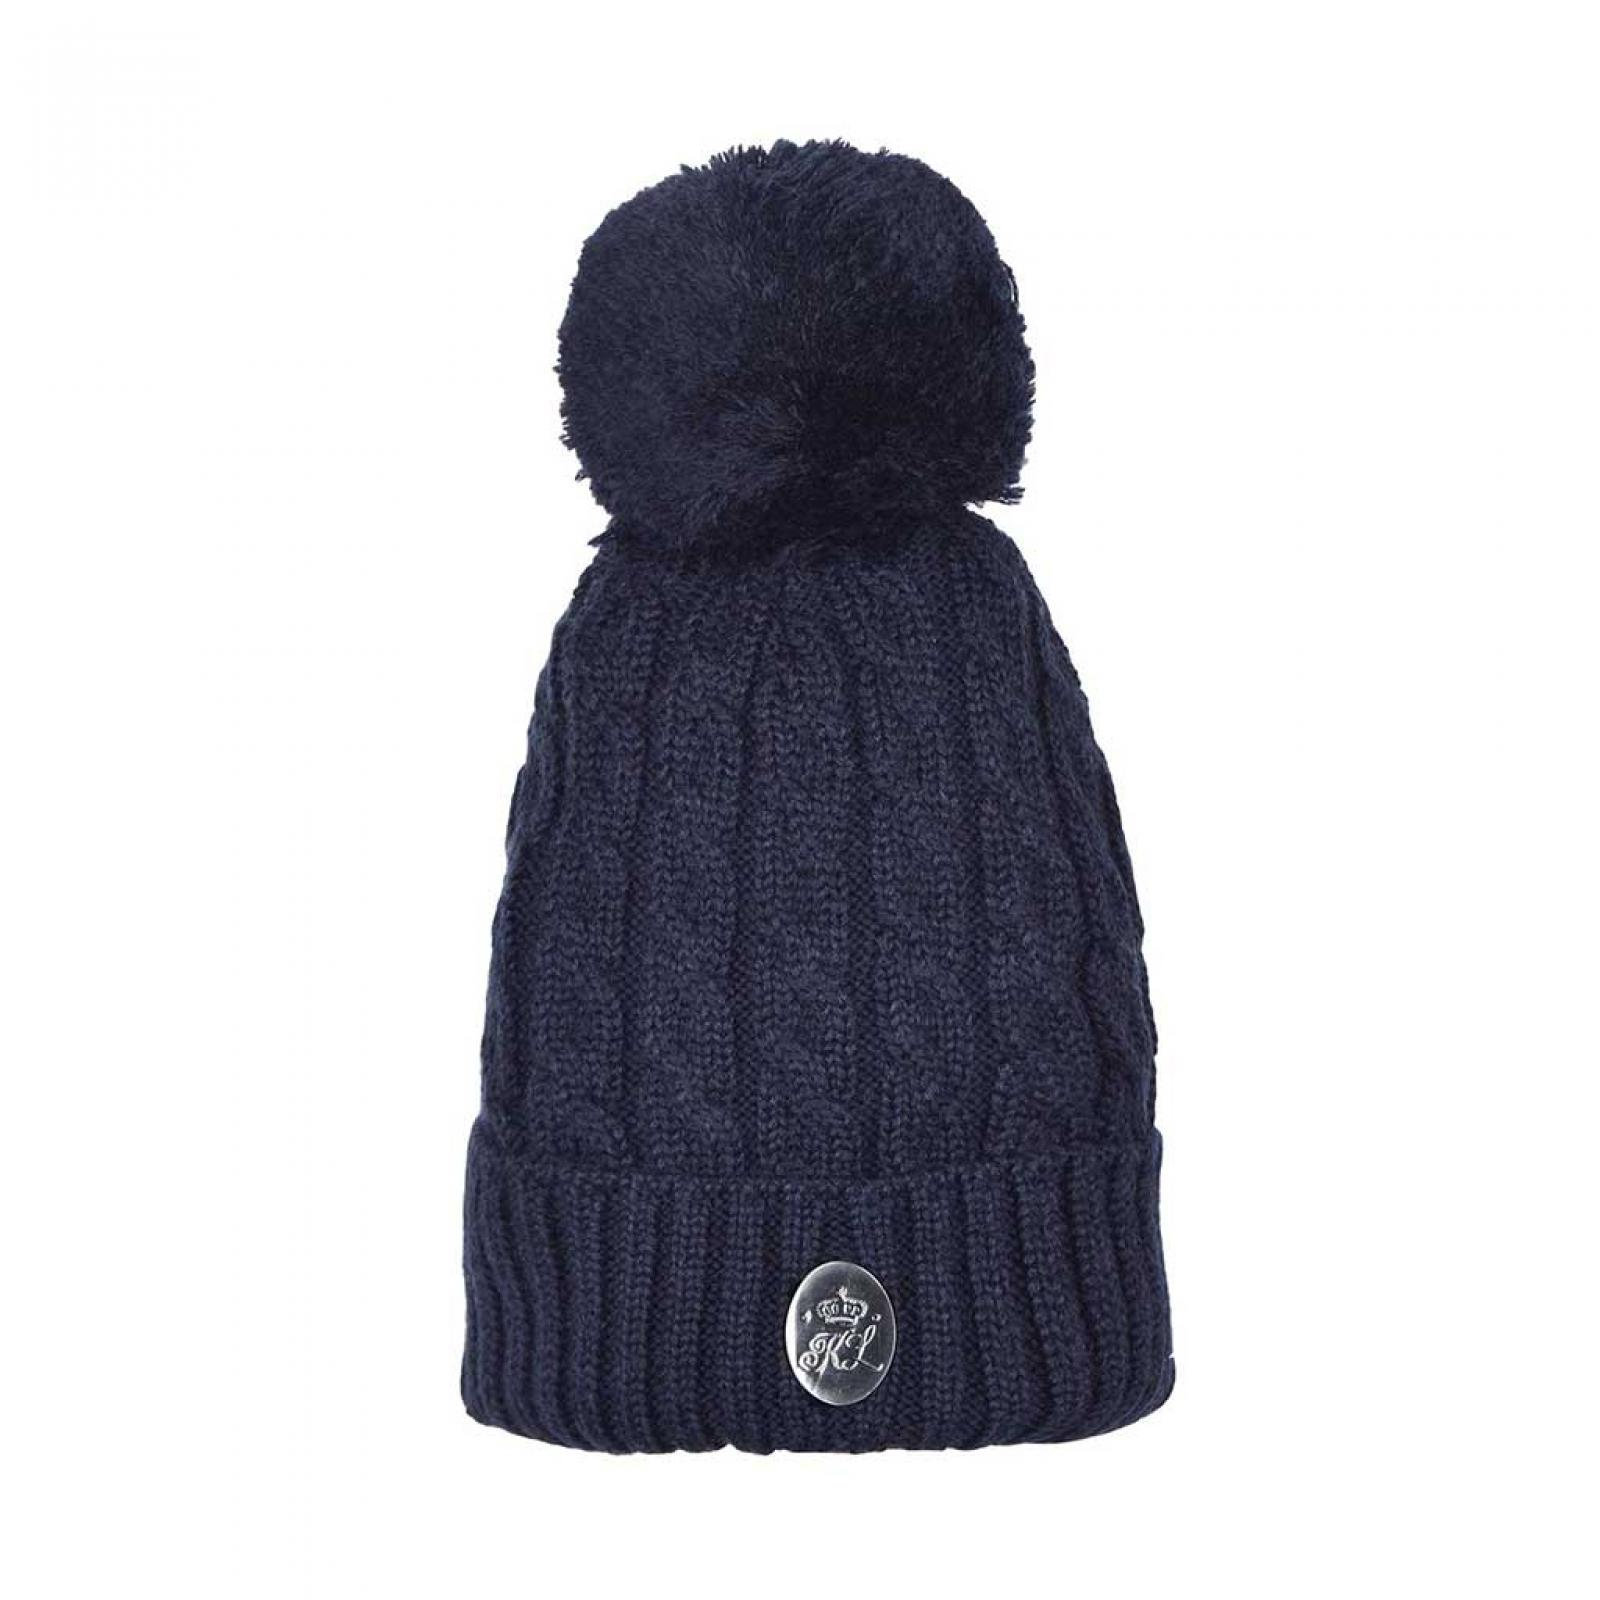 Kingsland Dot Cable Knitted Hat